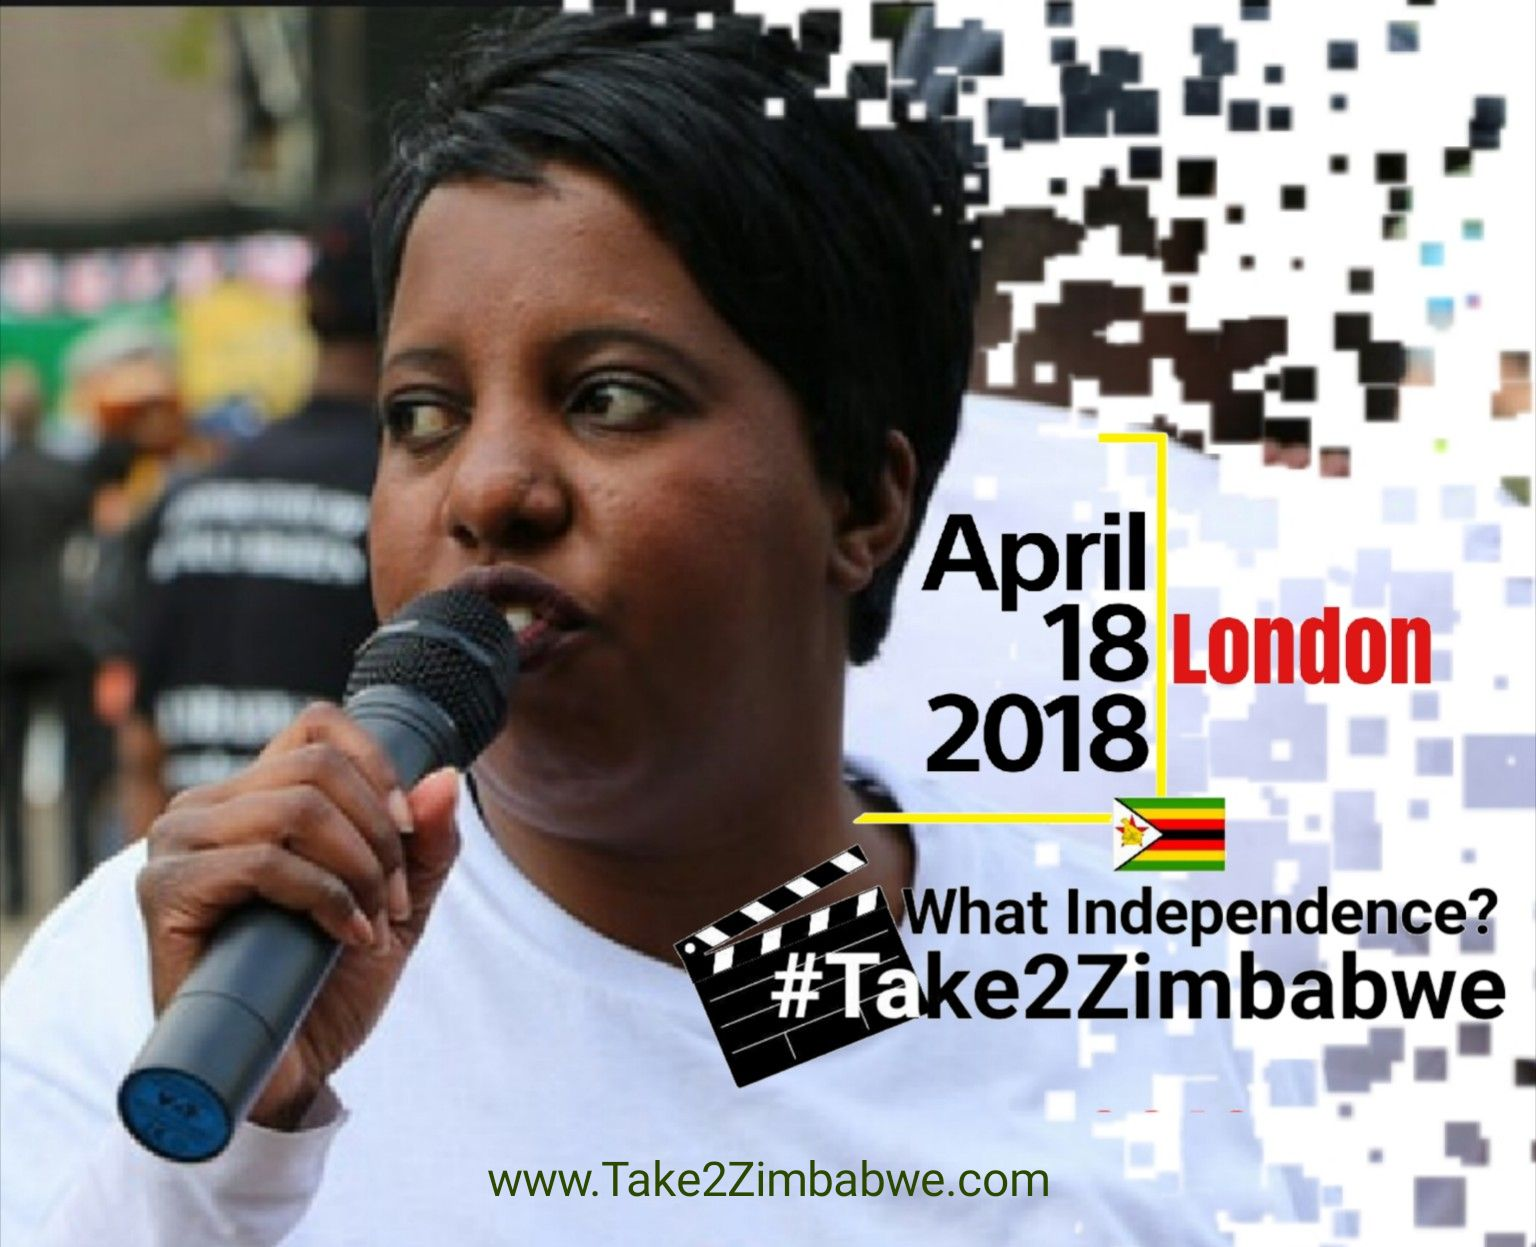 Wednesday 18th April 2018 Zimbabwe Embassy